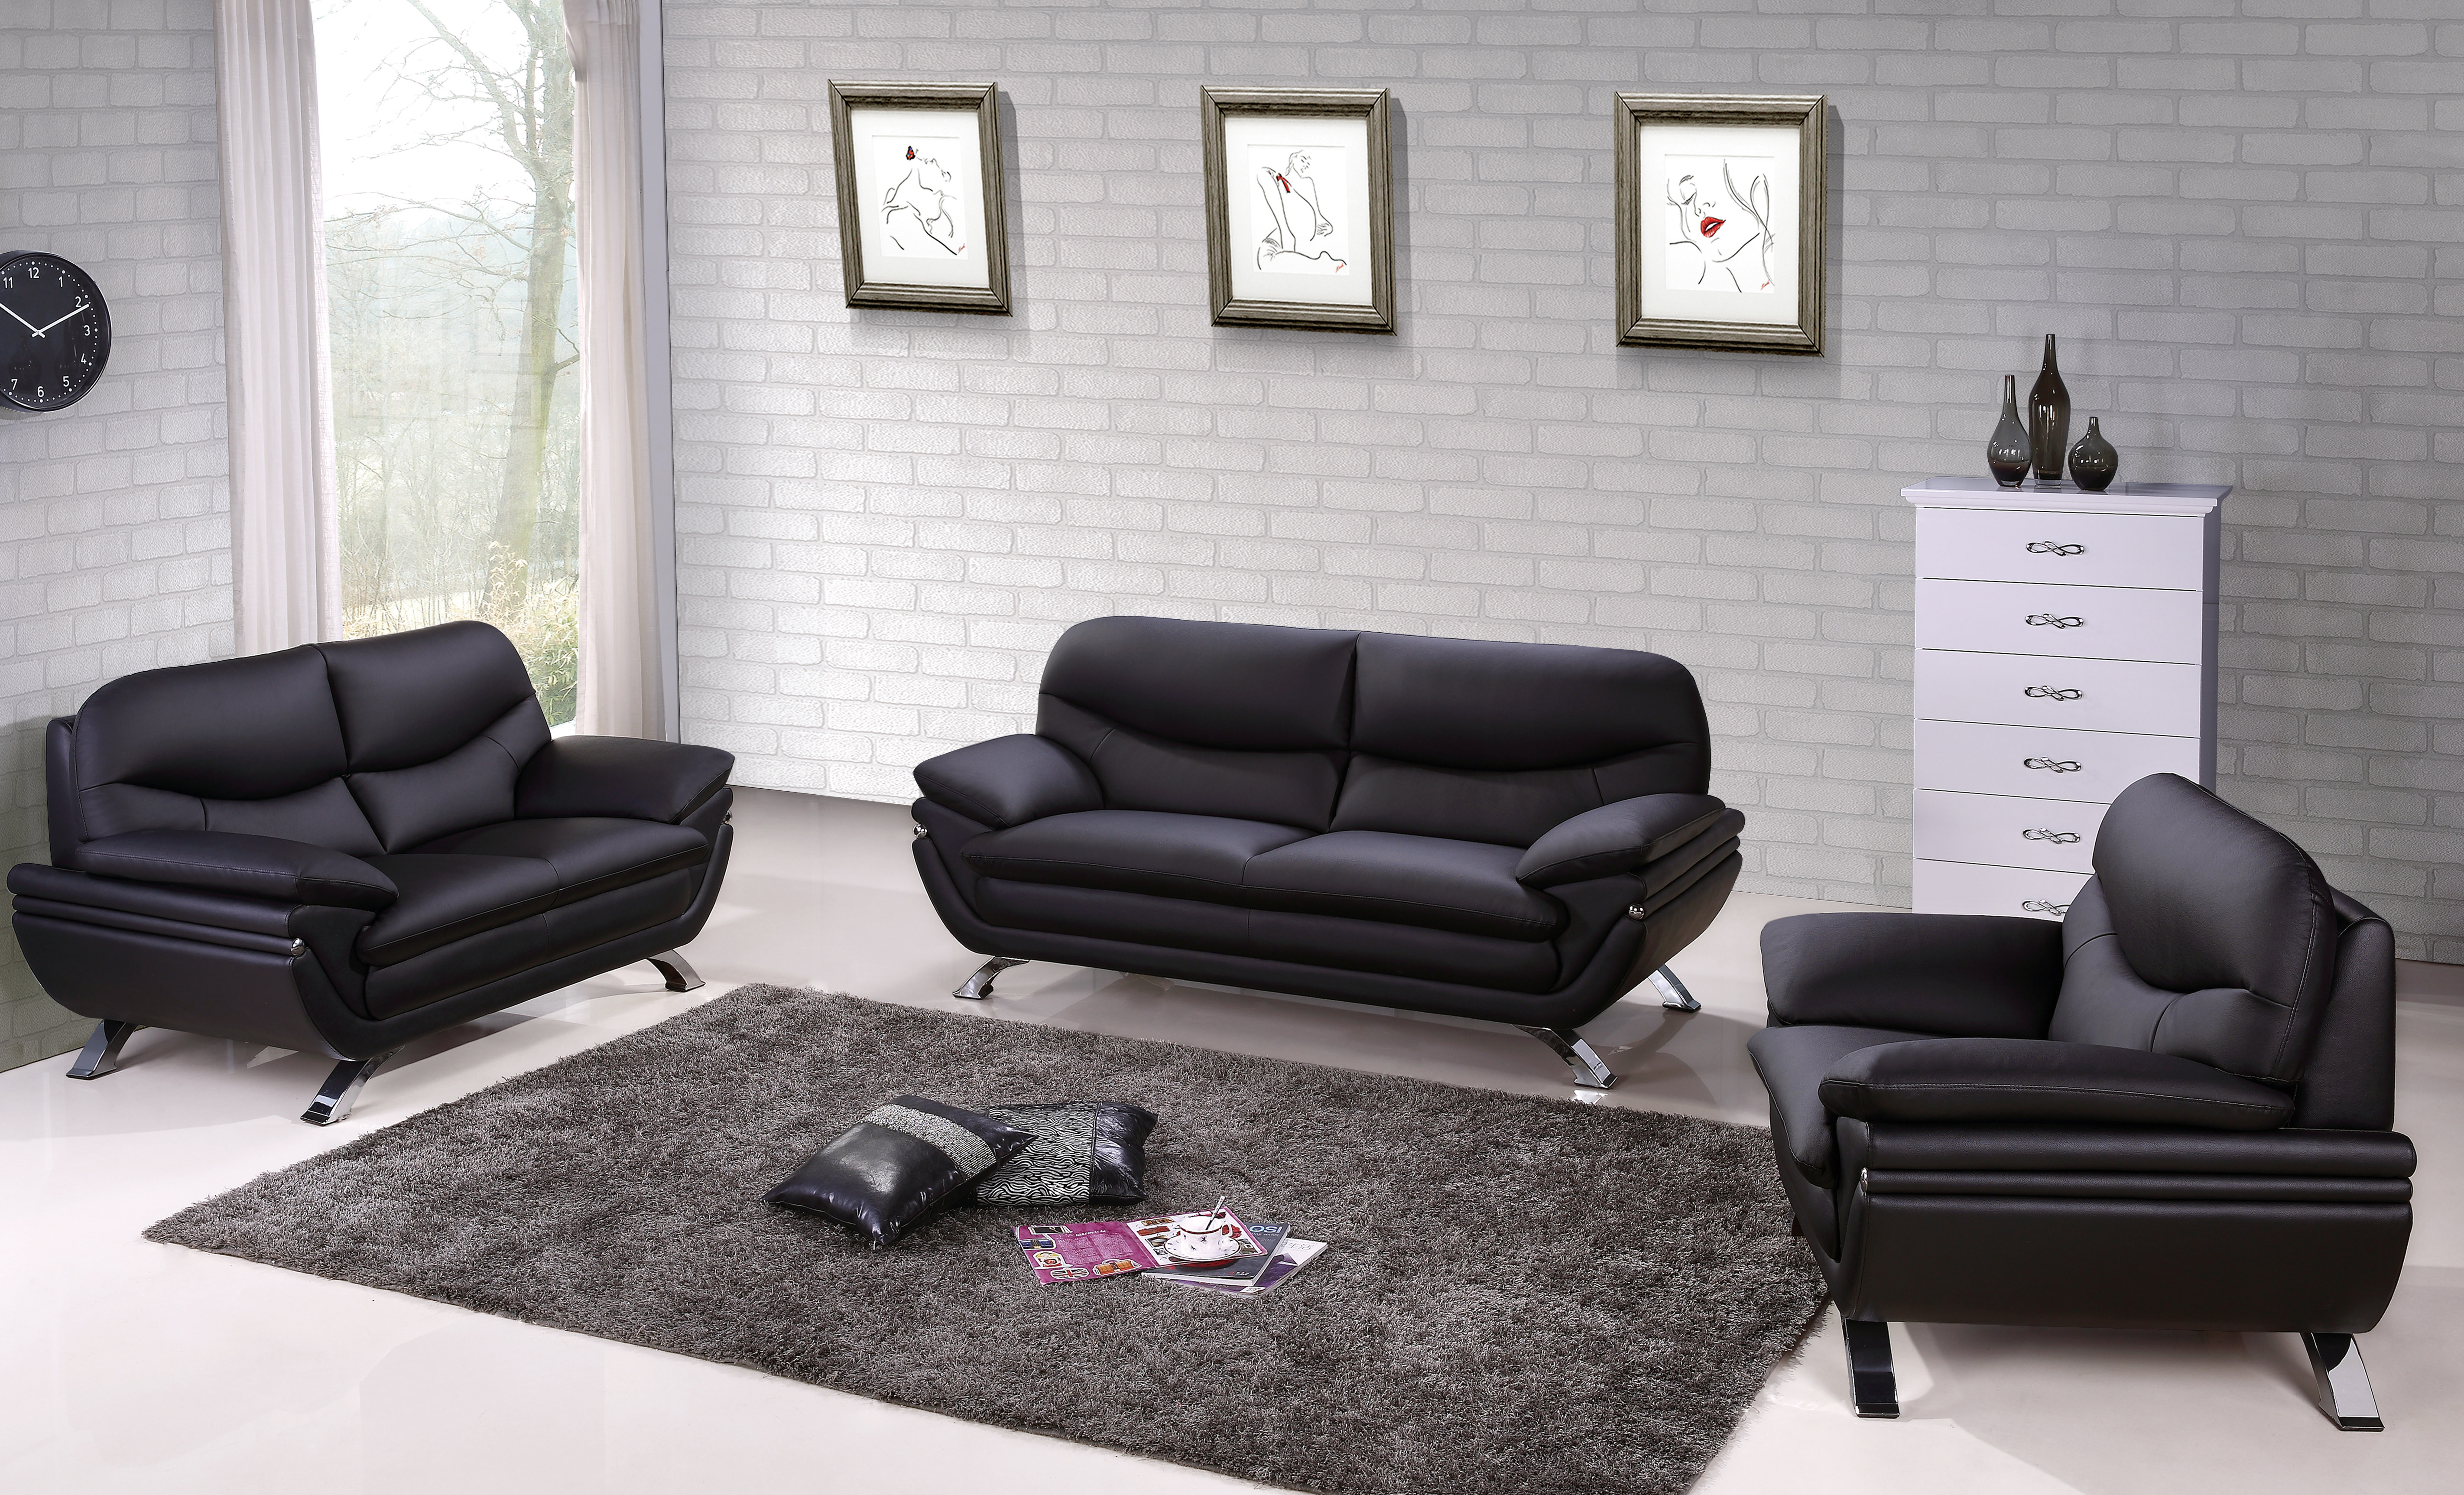 Living Room Sofas Sets Harmony Ying Yang Contemporary Leather Living Room Sofa Set